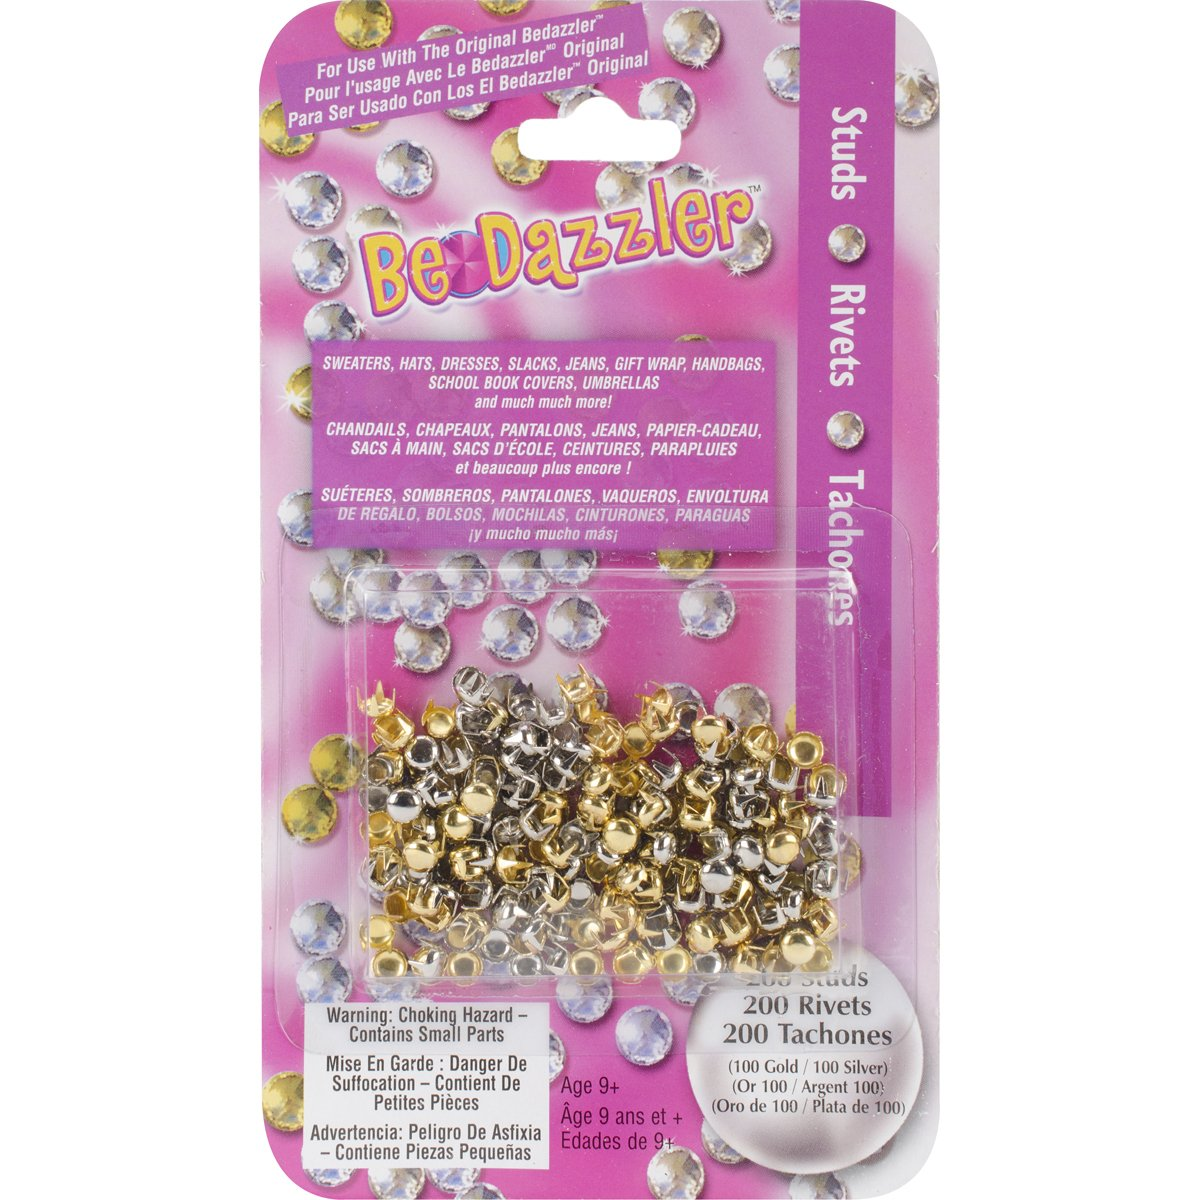 Amazon.com: Brand New Be Dazzler Stud Refill 200/Pkg-Gold & Silver Brand New: Arts, Crafts & Sewing